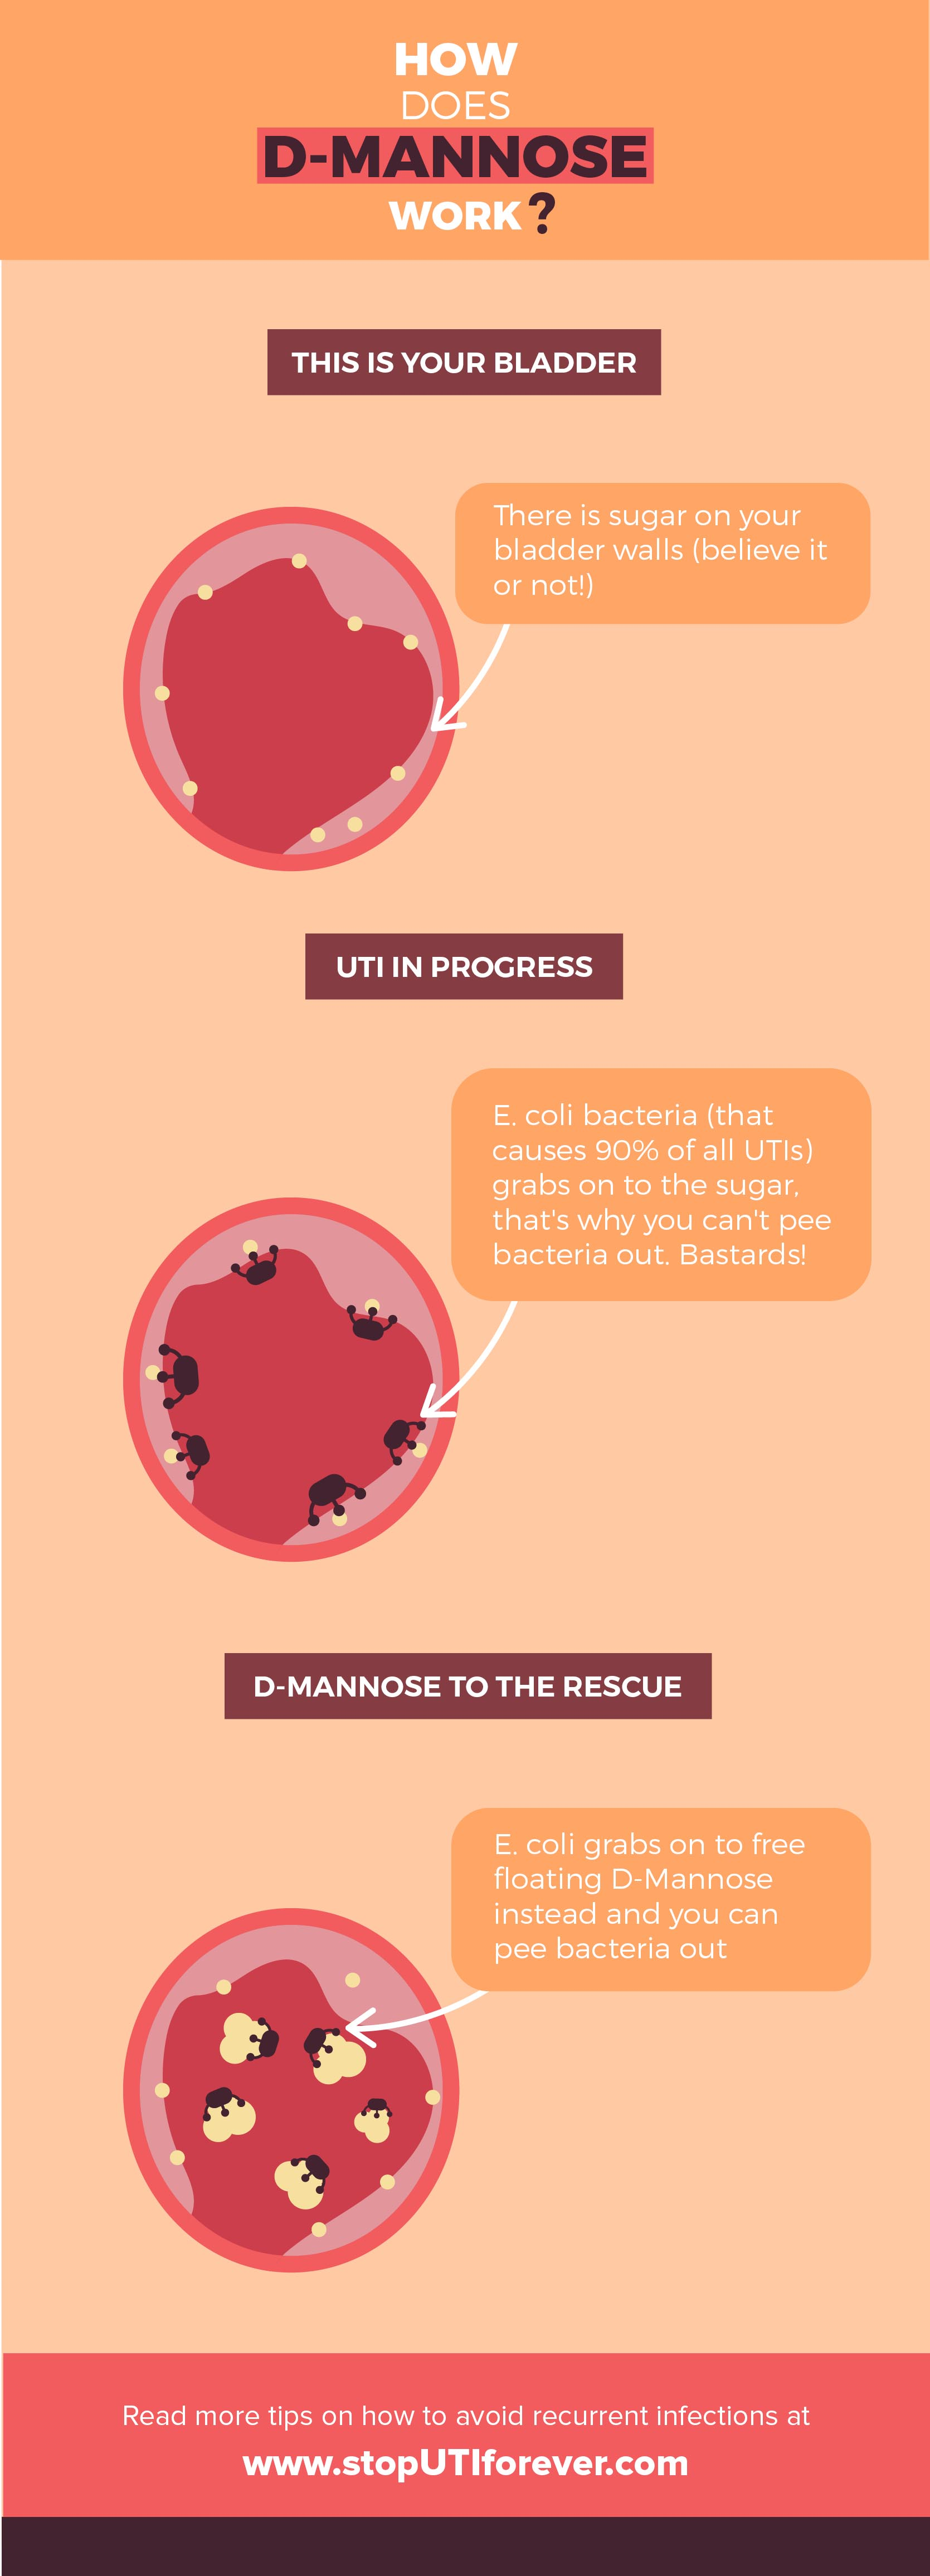 Infographic: how does d-mannose work?